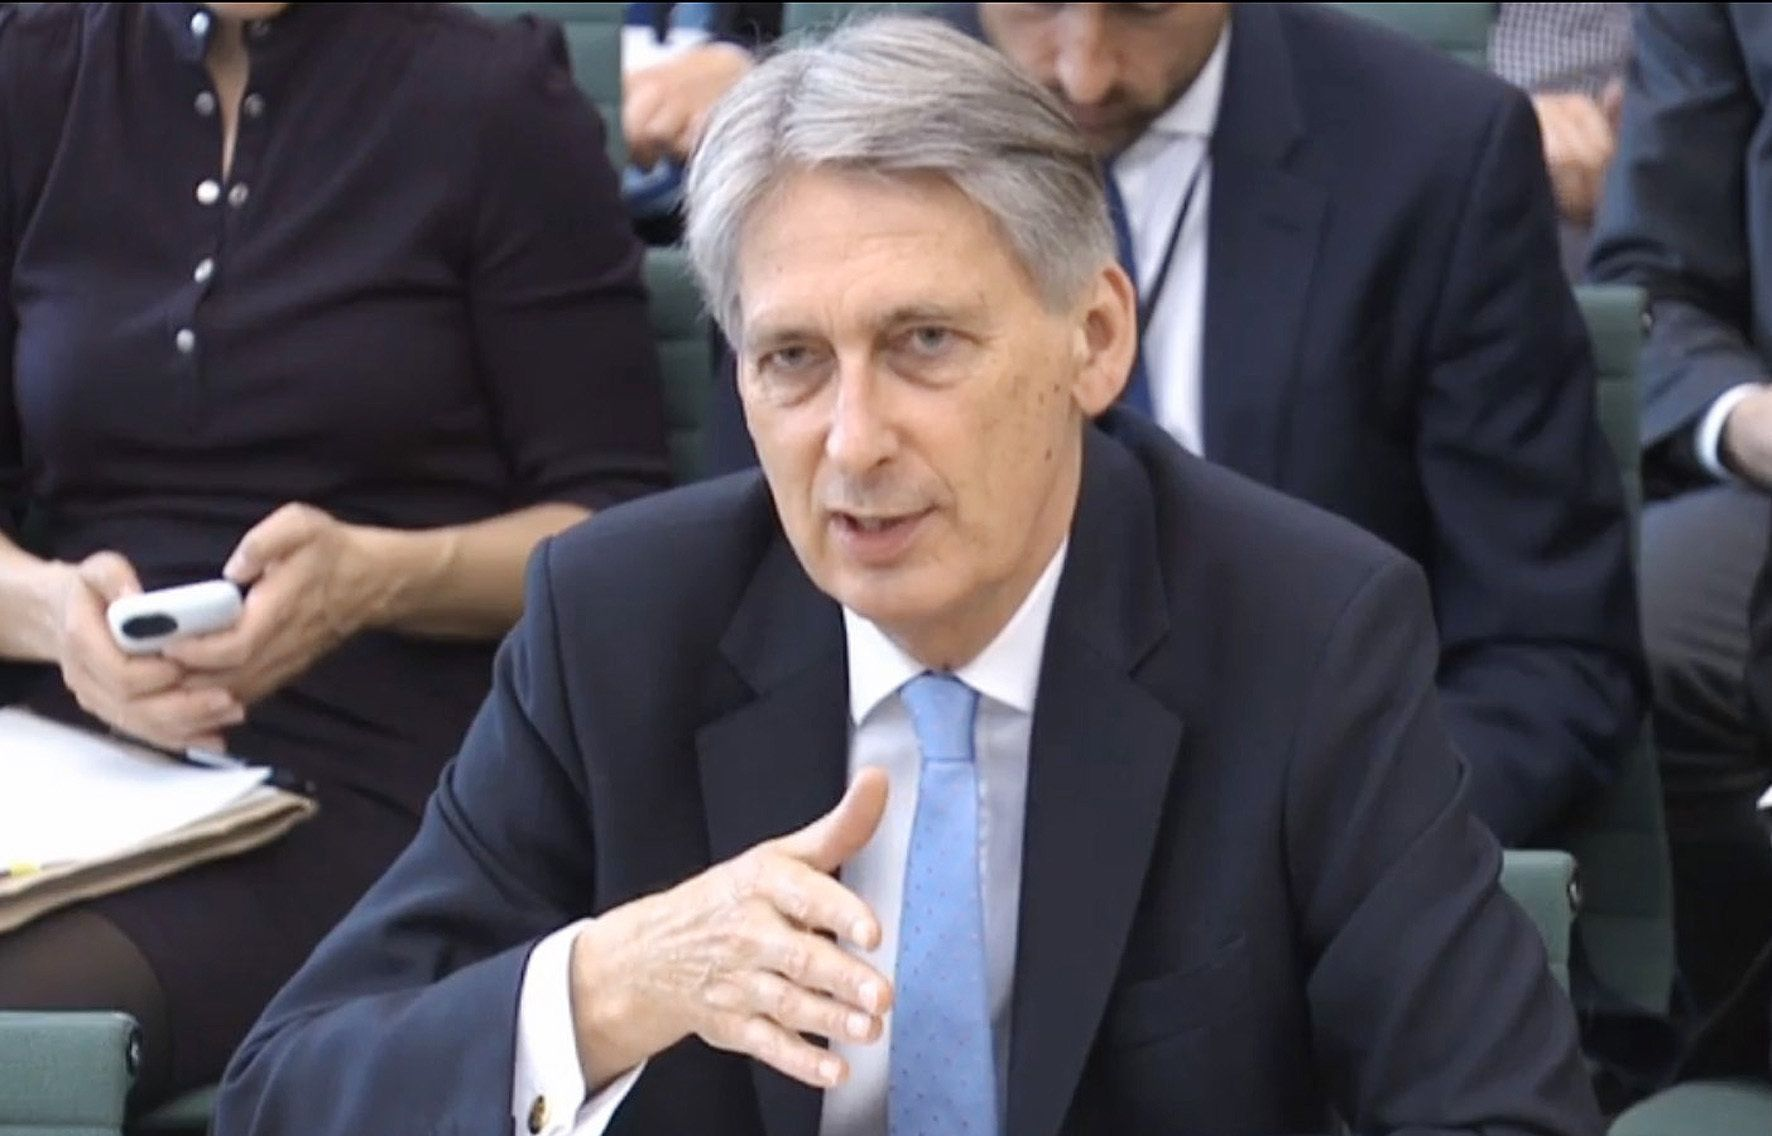 Philip Hammond must be sacked, say senior Tories